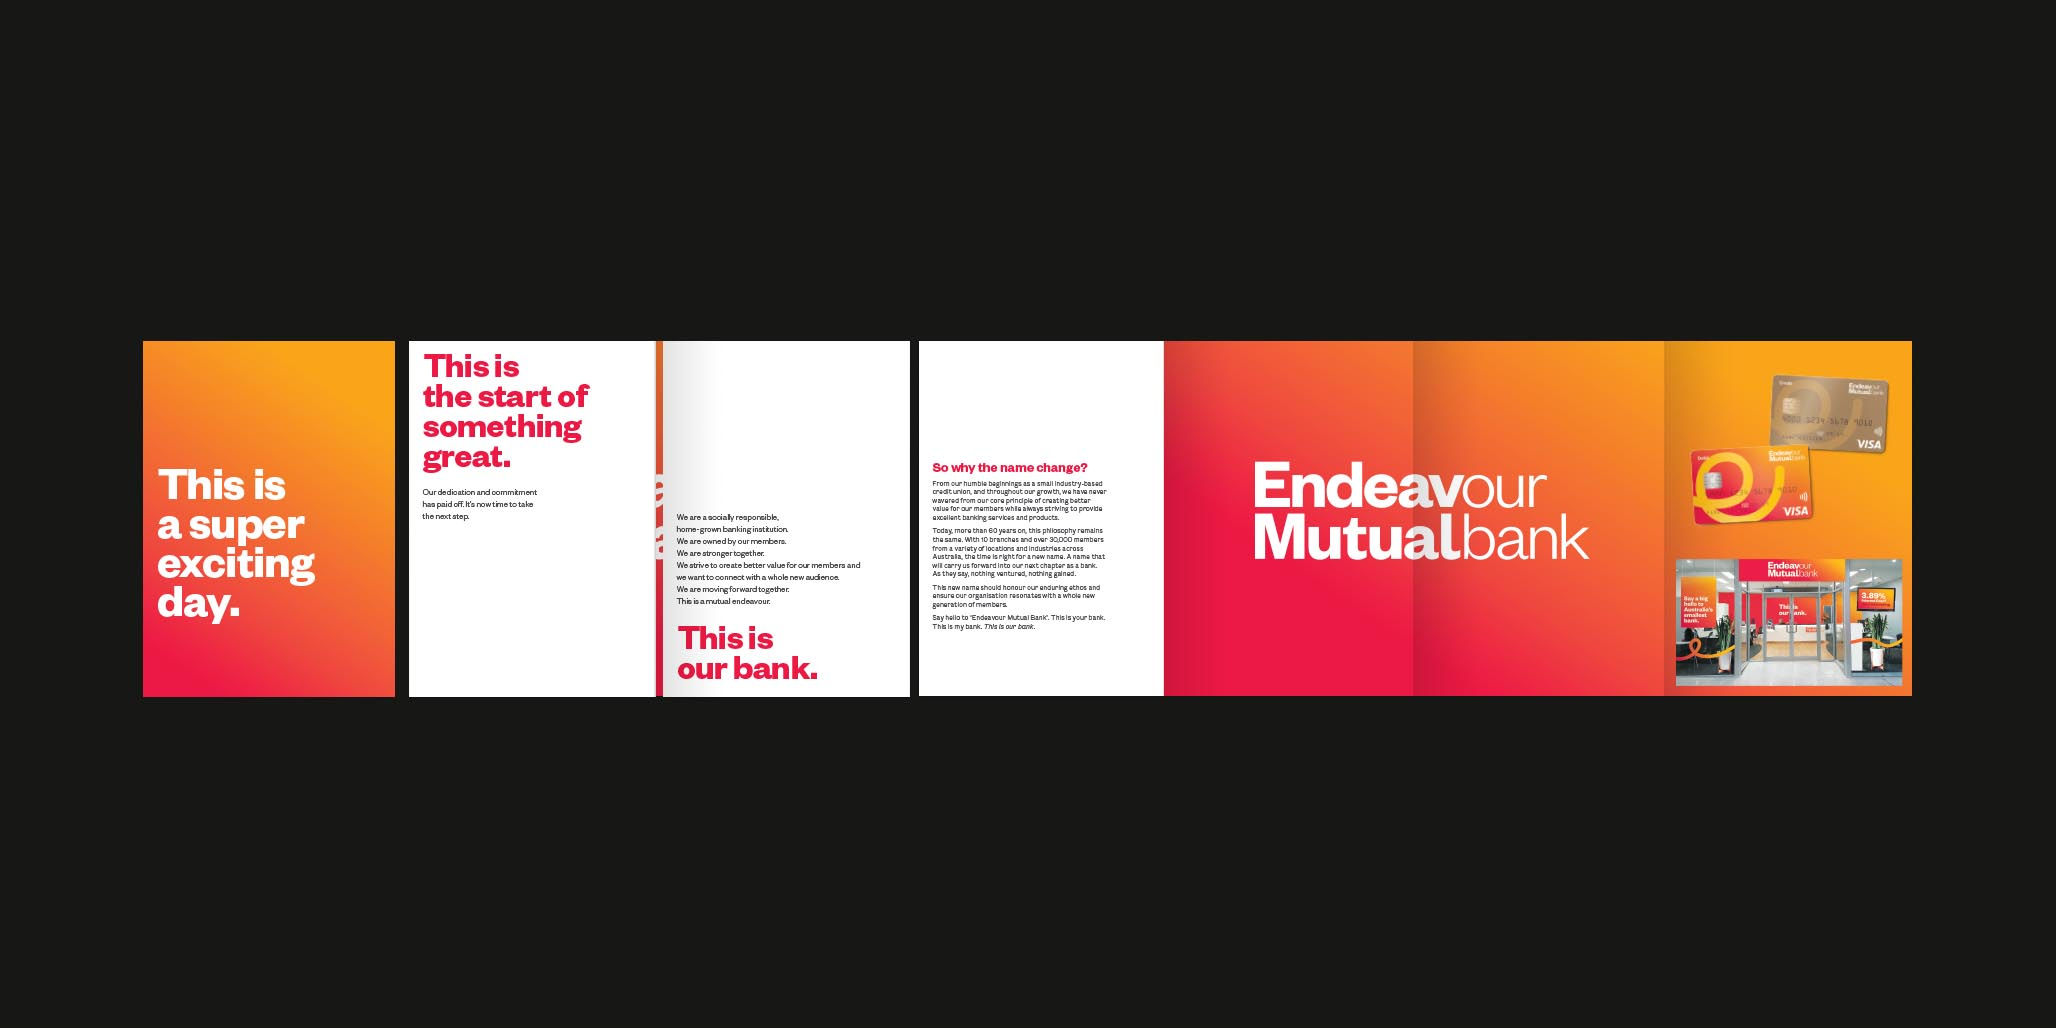 Rebranding, Brand Identity Design & Roll-out project for financial services company, Endeavour Mutual Bank, Sydney, Australia, image O